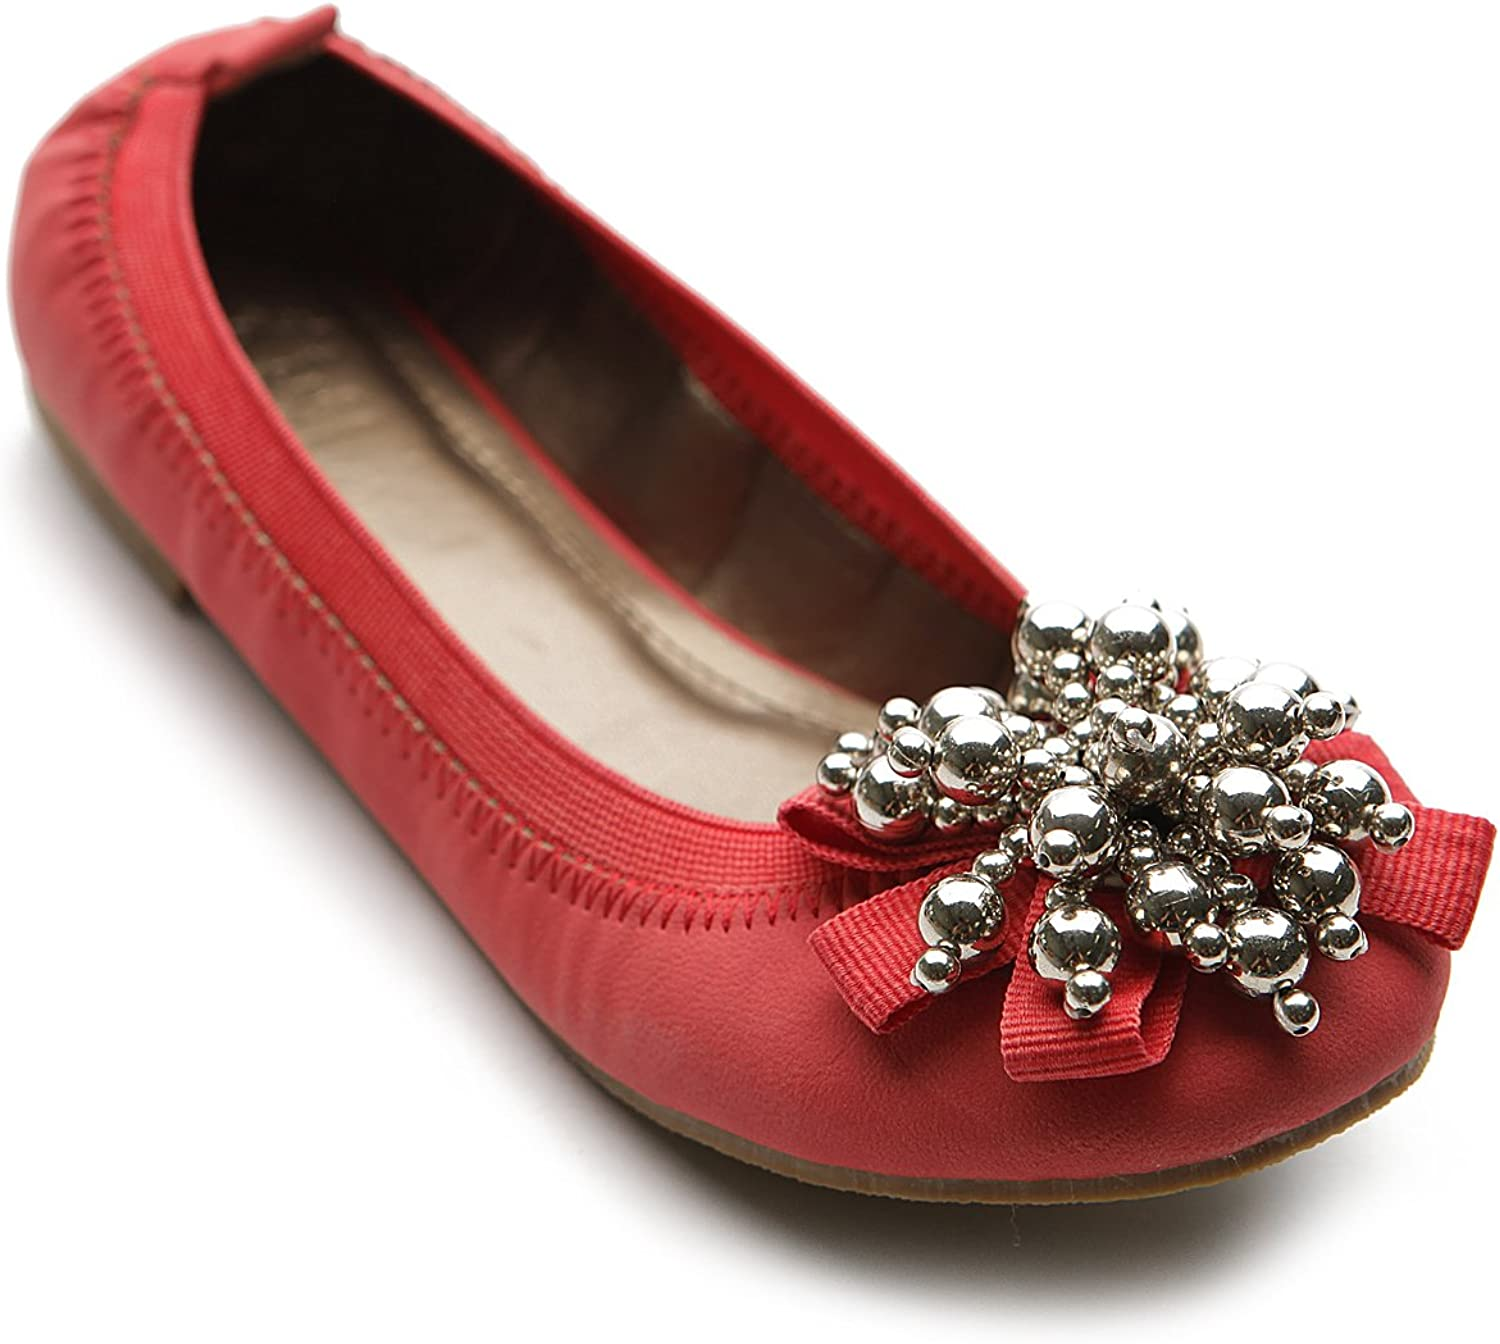 Ollio Womens Ballet shoes Soft Cute Silver Bead Accent Flats M1913 (6.5 B(M) US, Scarlet)